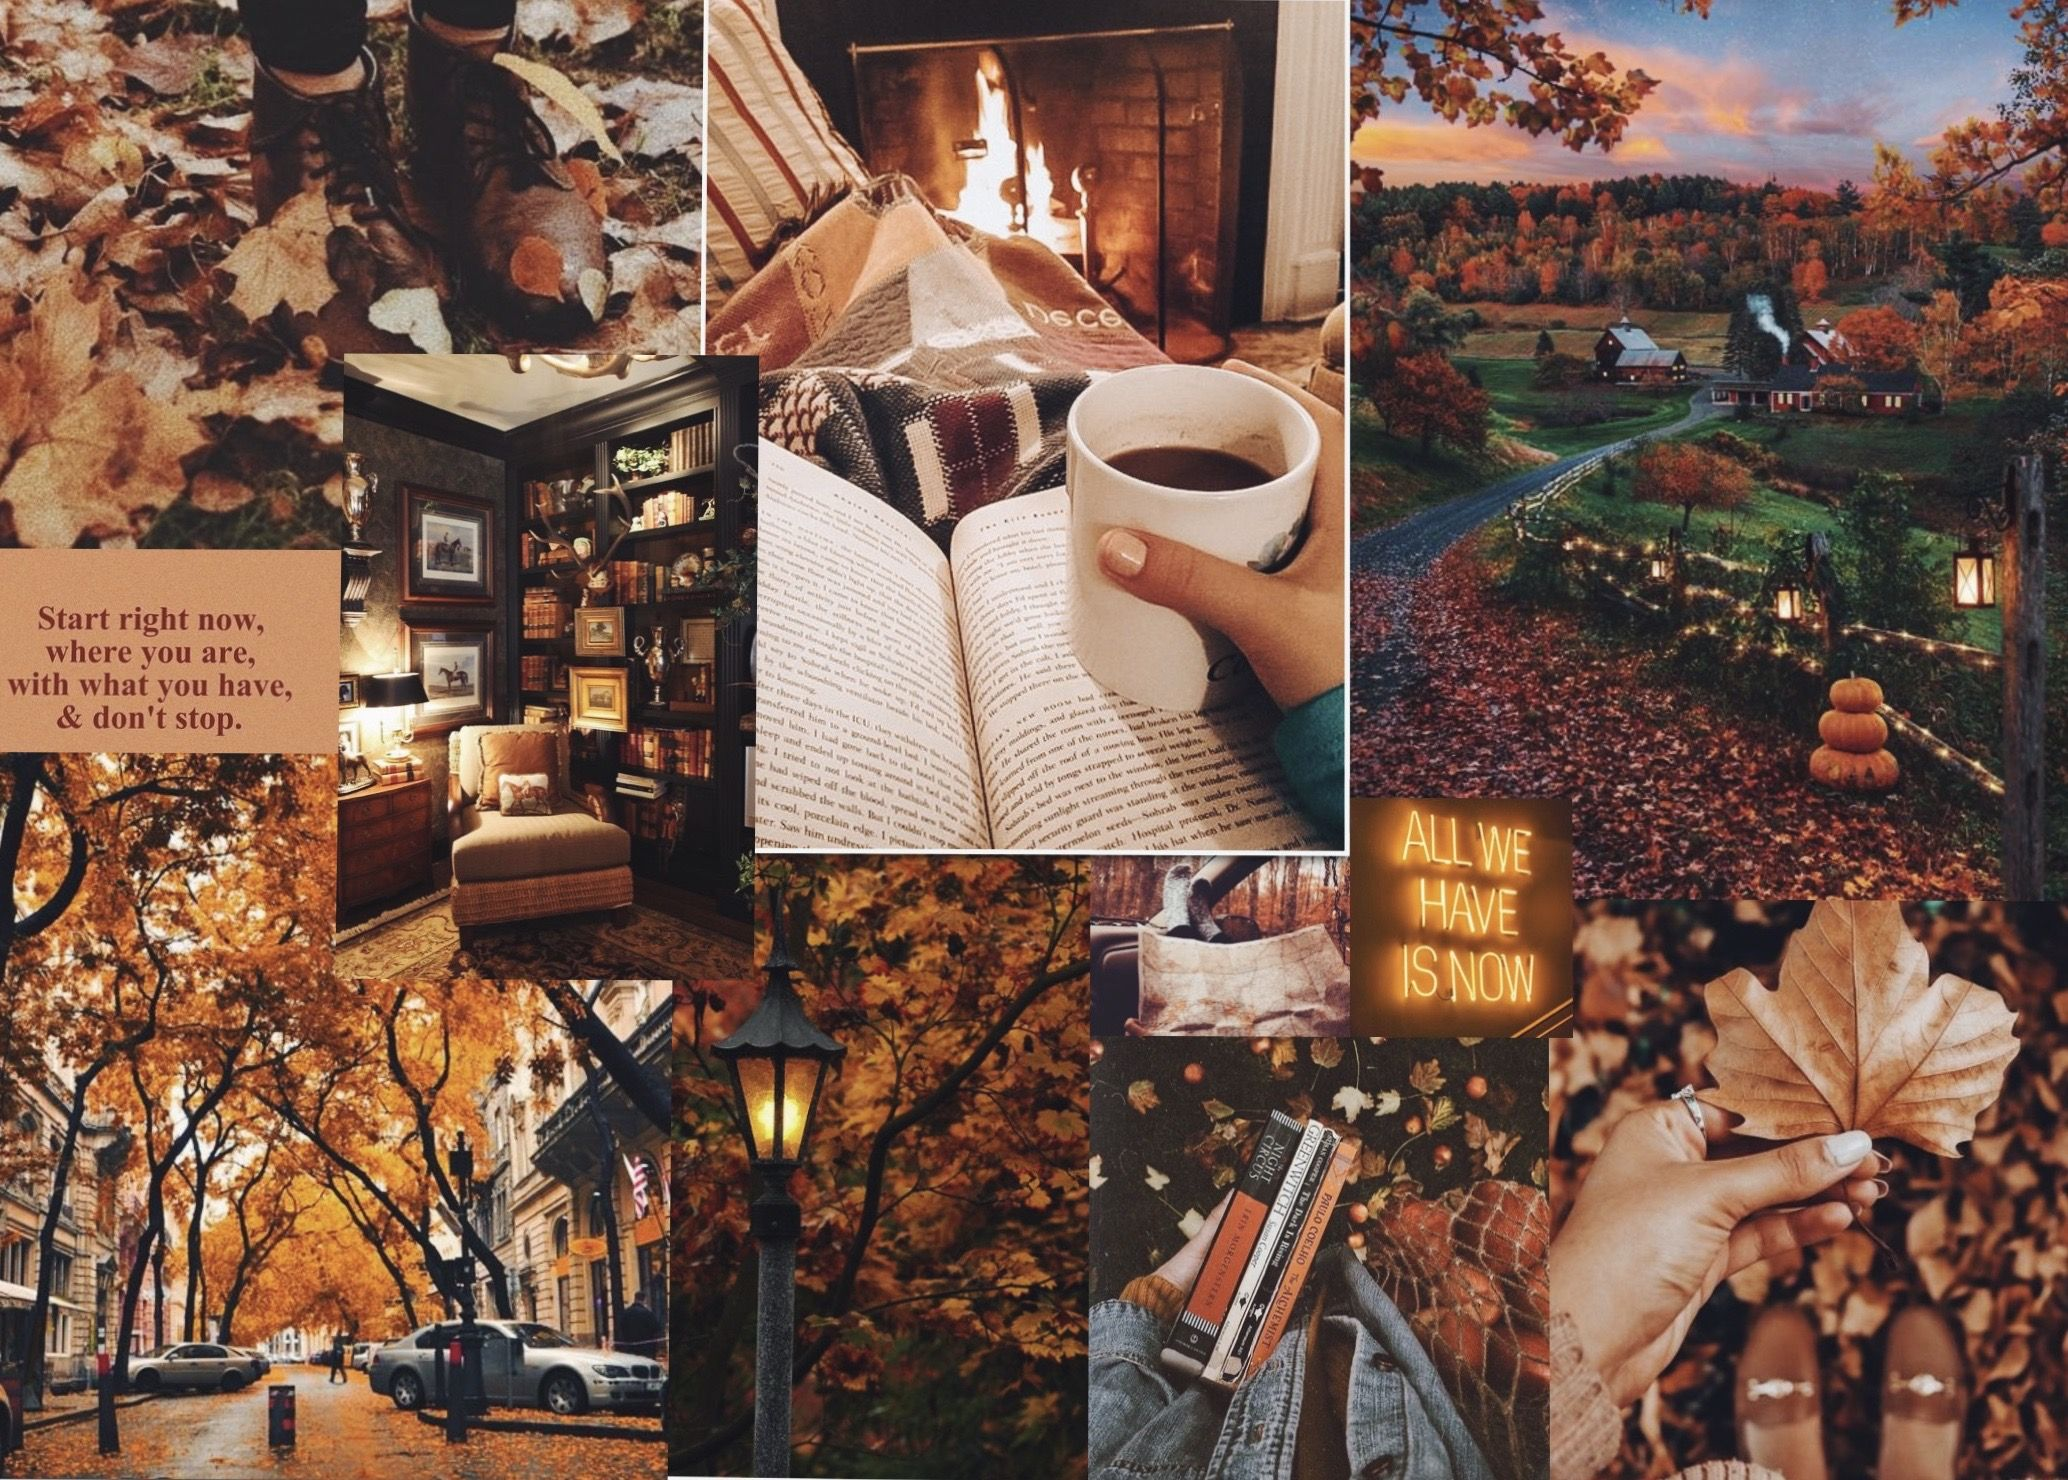 23+ Cozy Cute Fall Desktop Wallpaper Gif